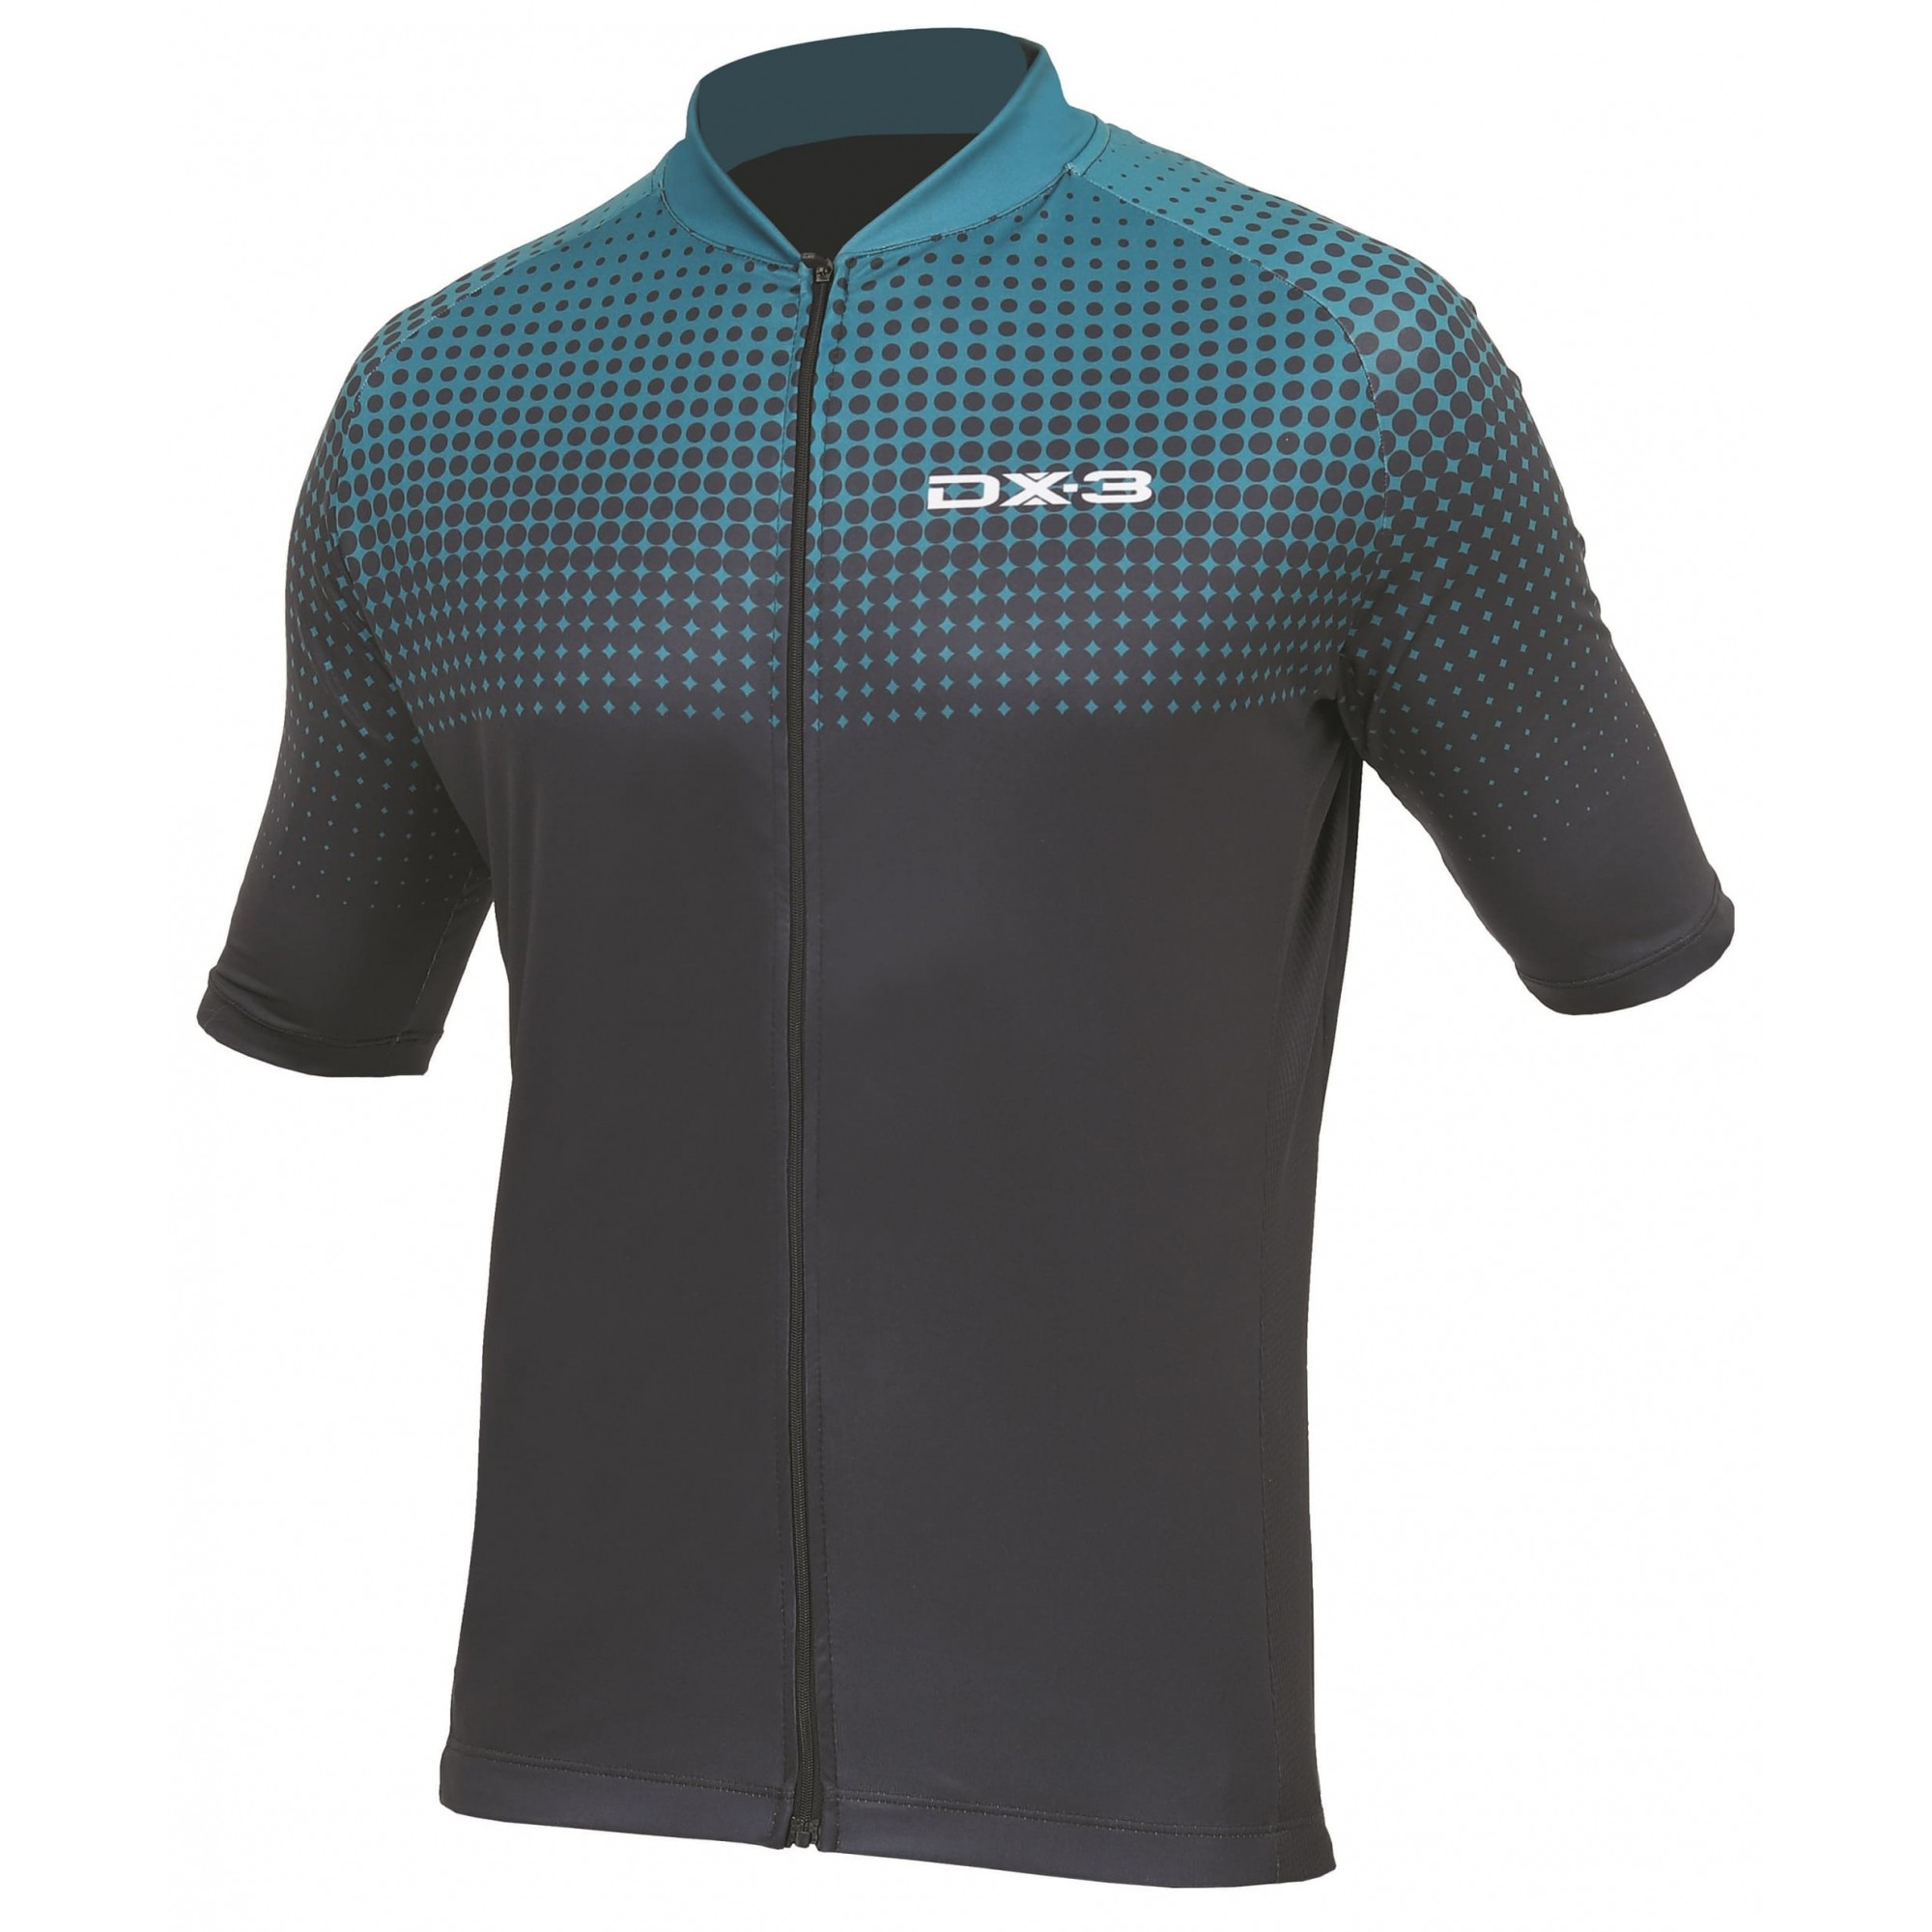 Camisa Ciclismo Masculina Fusion DX3 Verde